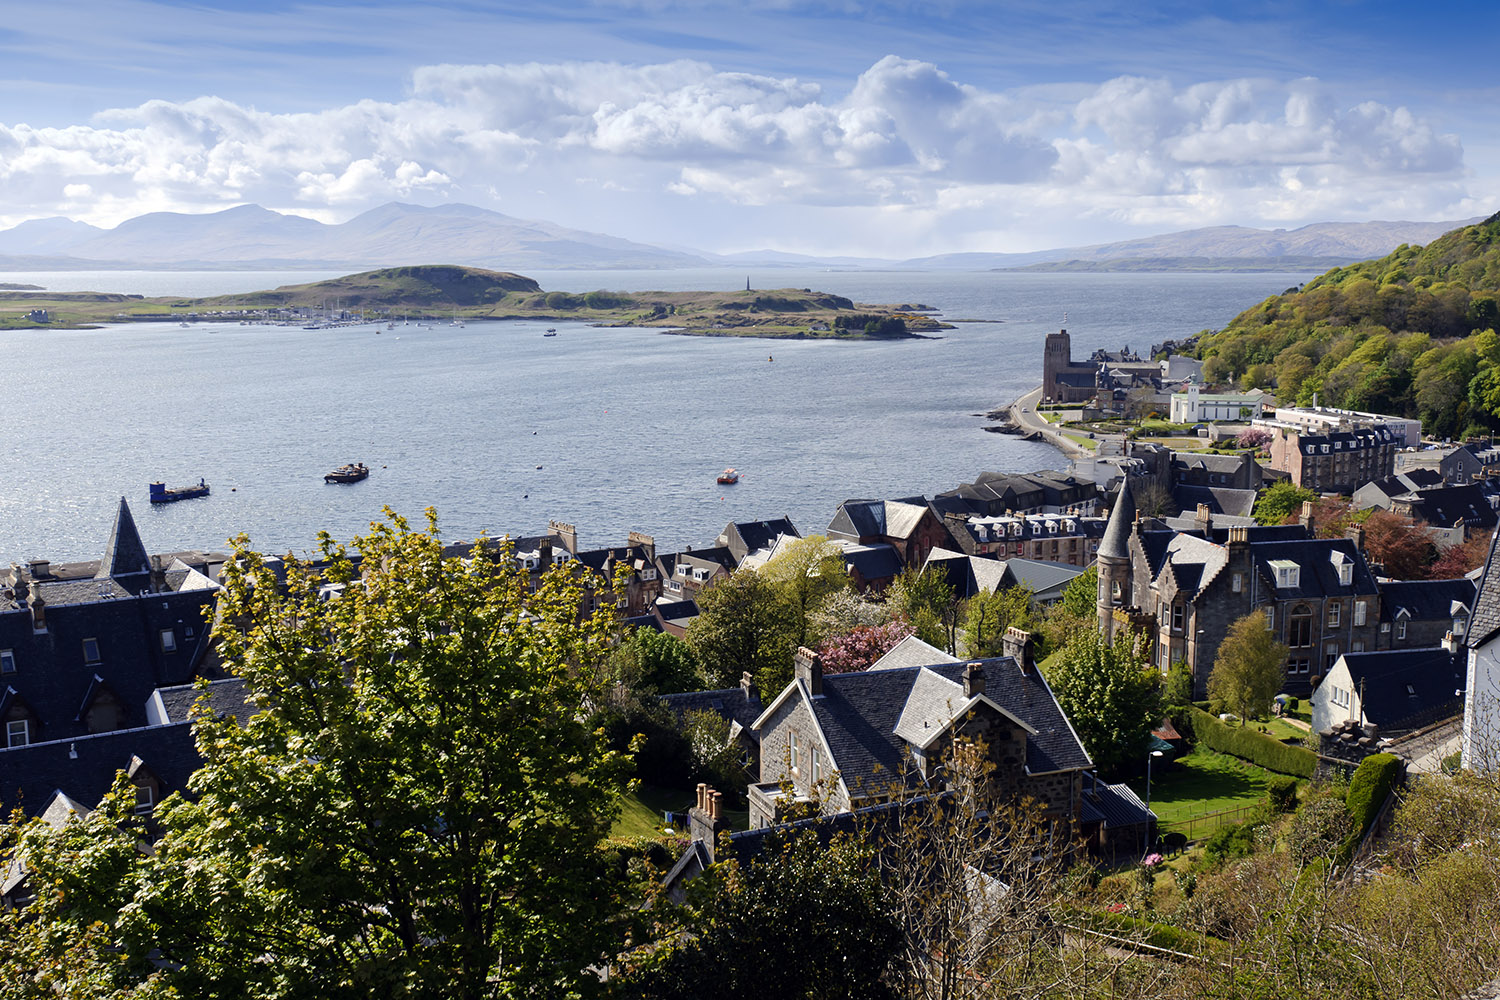 The town of Oban which can be visited on our private tours of Scotland